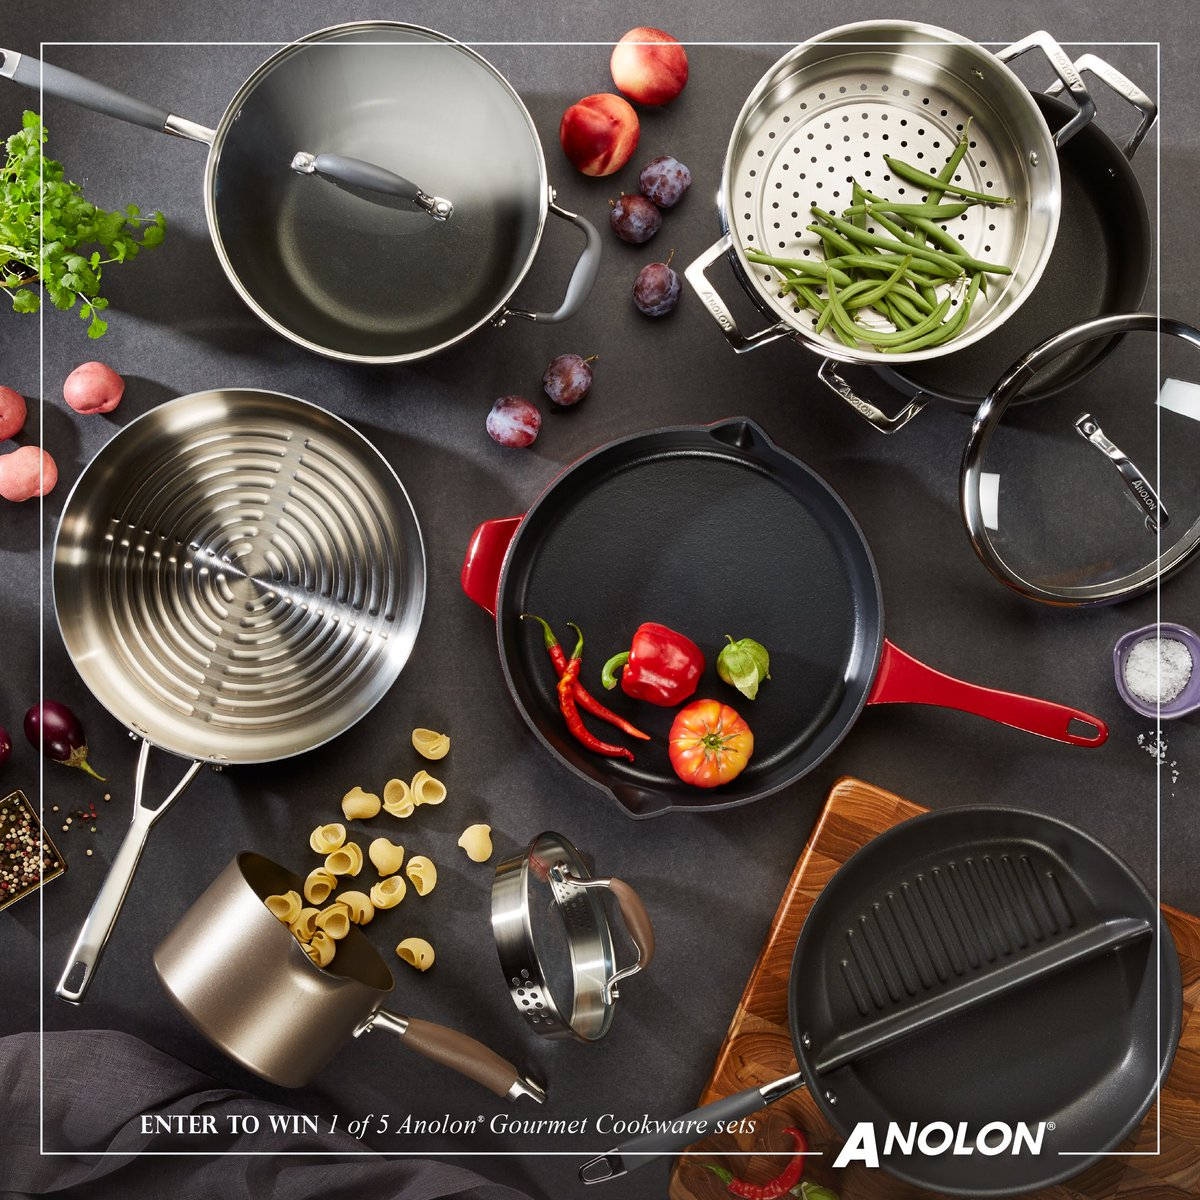 Ends 10/10 >> RT to share & enter to WIN 1 of 5 Anolon Gourmet Cookware Sets: https://t.co/Tu2GBuqRJ7 https://t.co/yvGurUGLRf